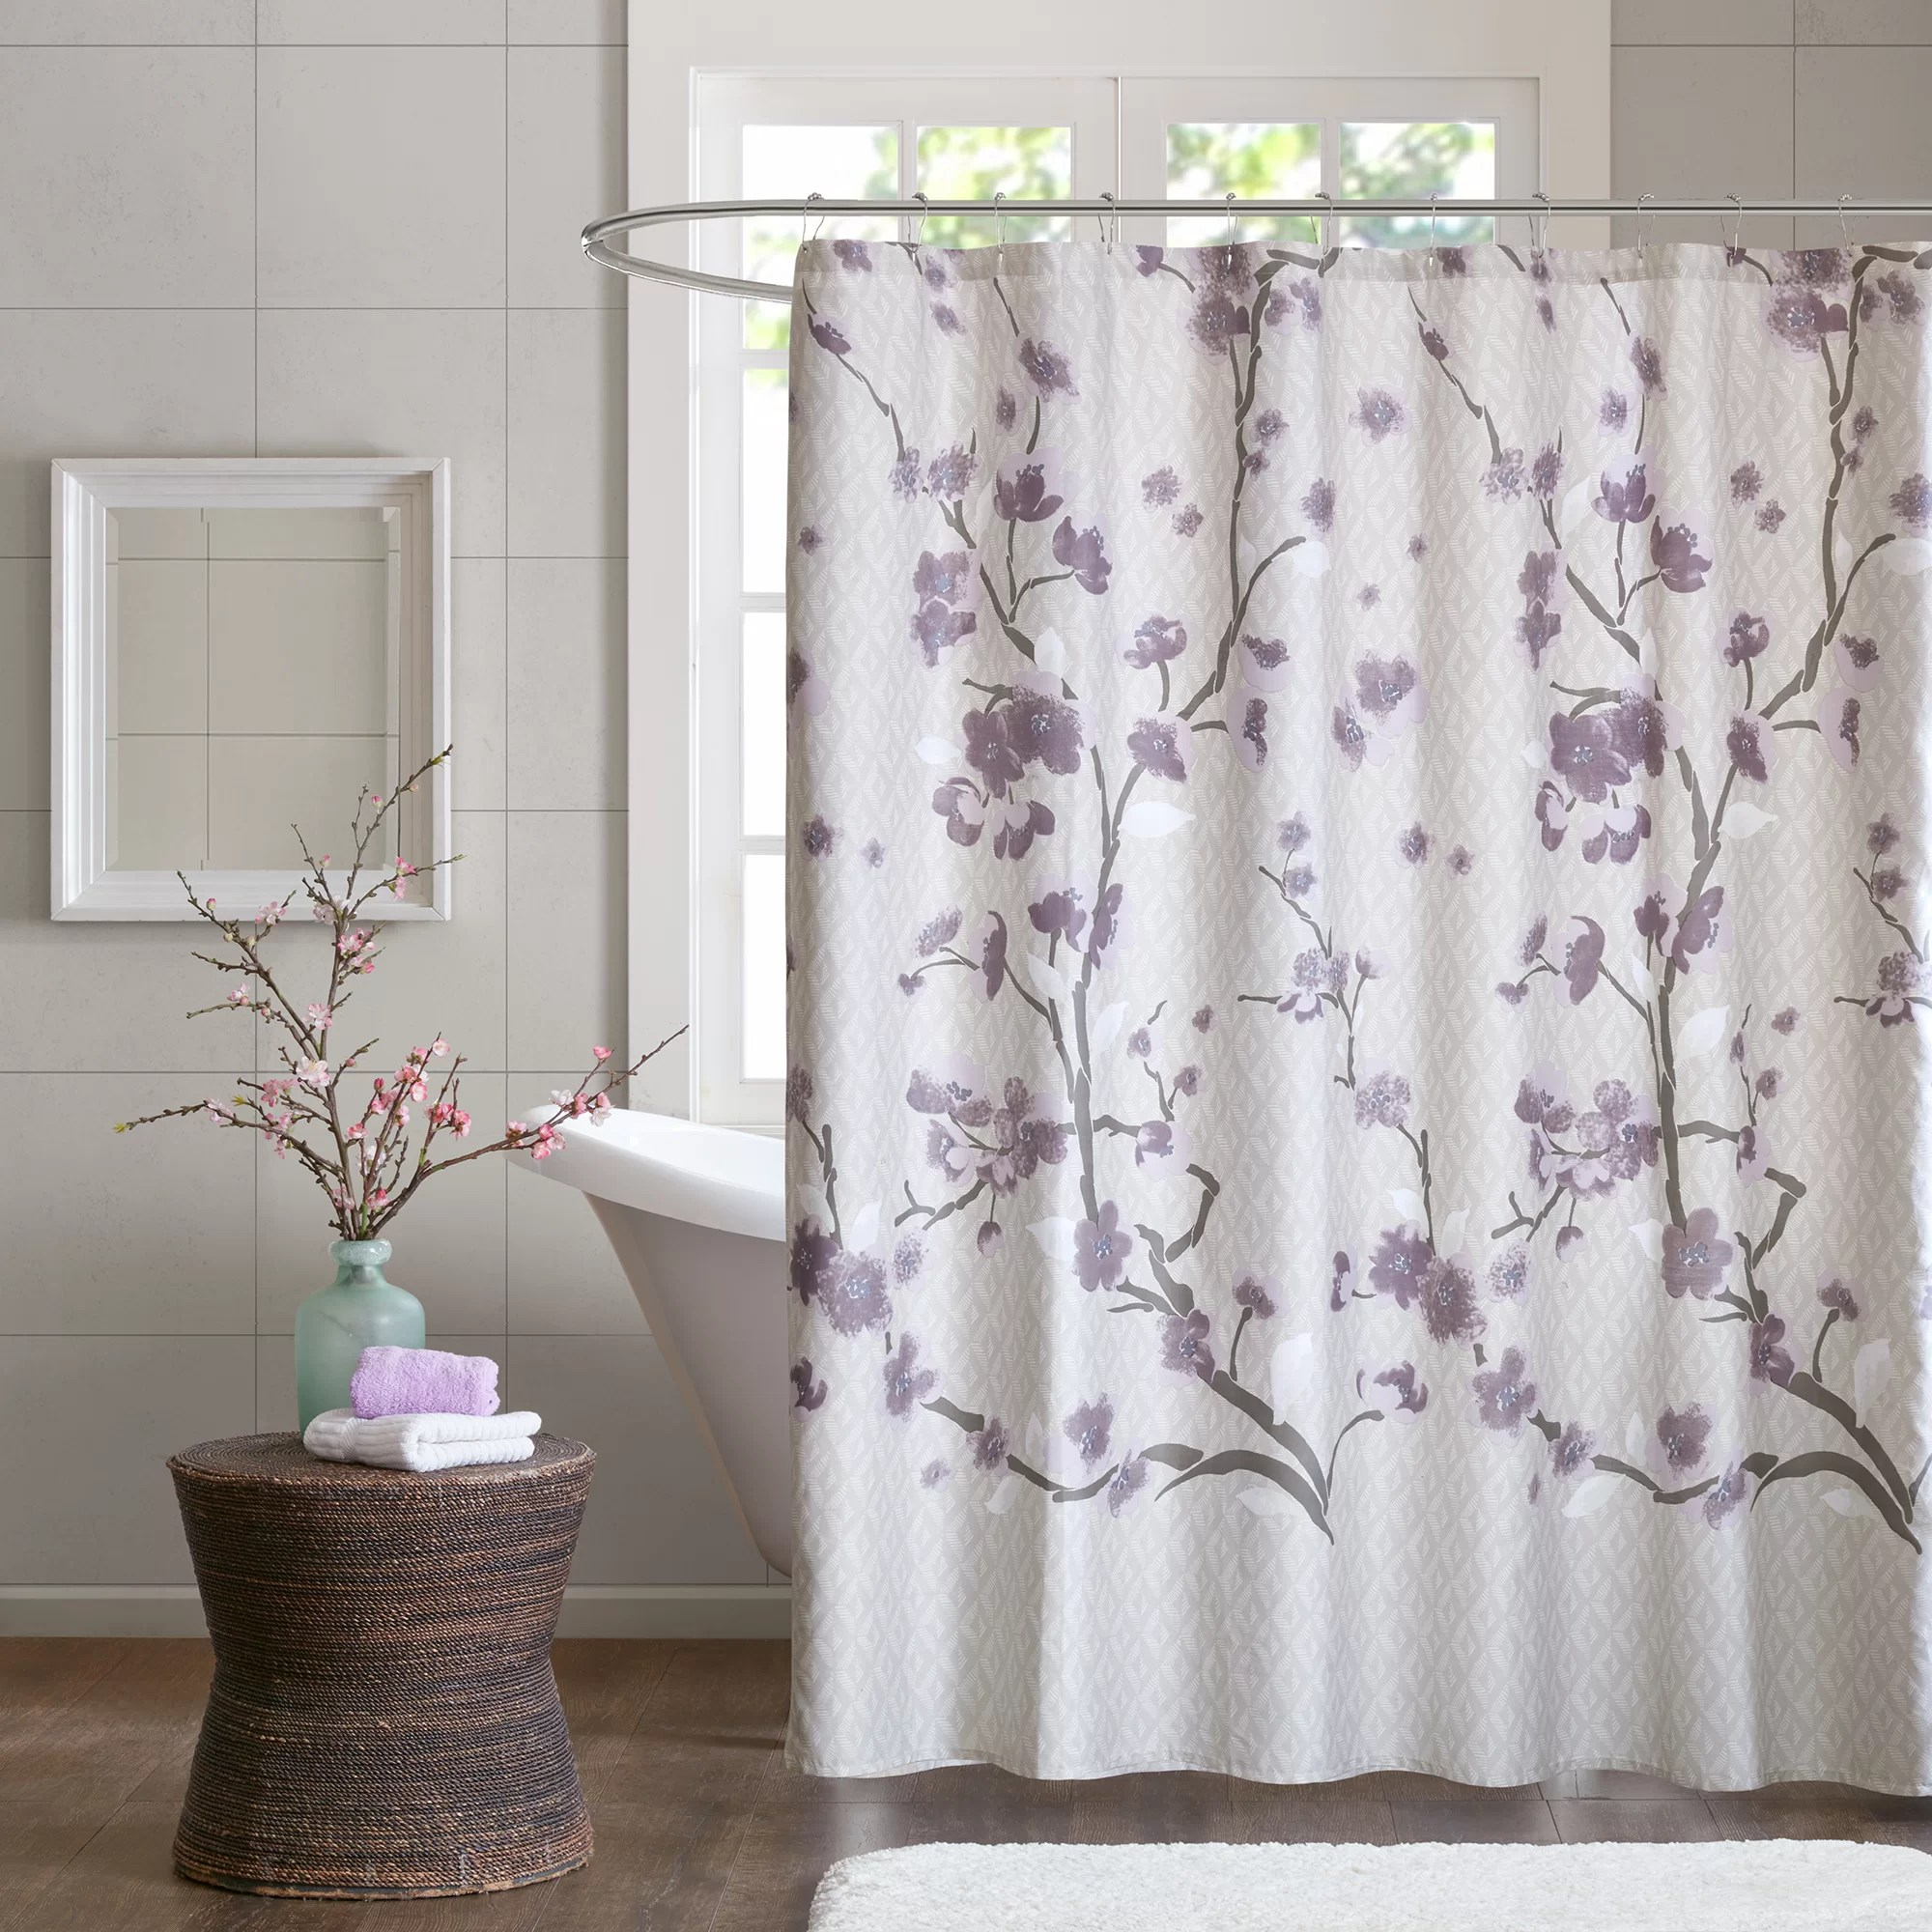 Lavender Shower Curtains Buchanan Cotton Single Shower Curtain